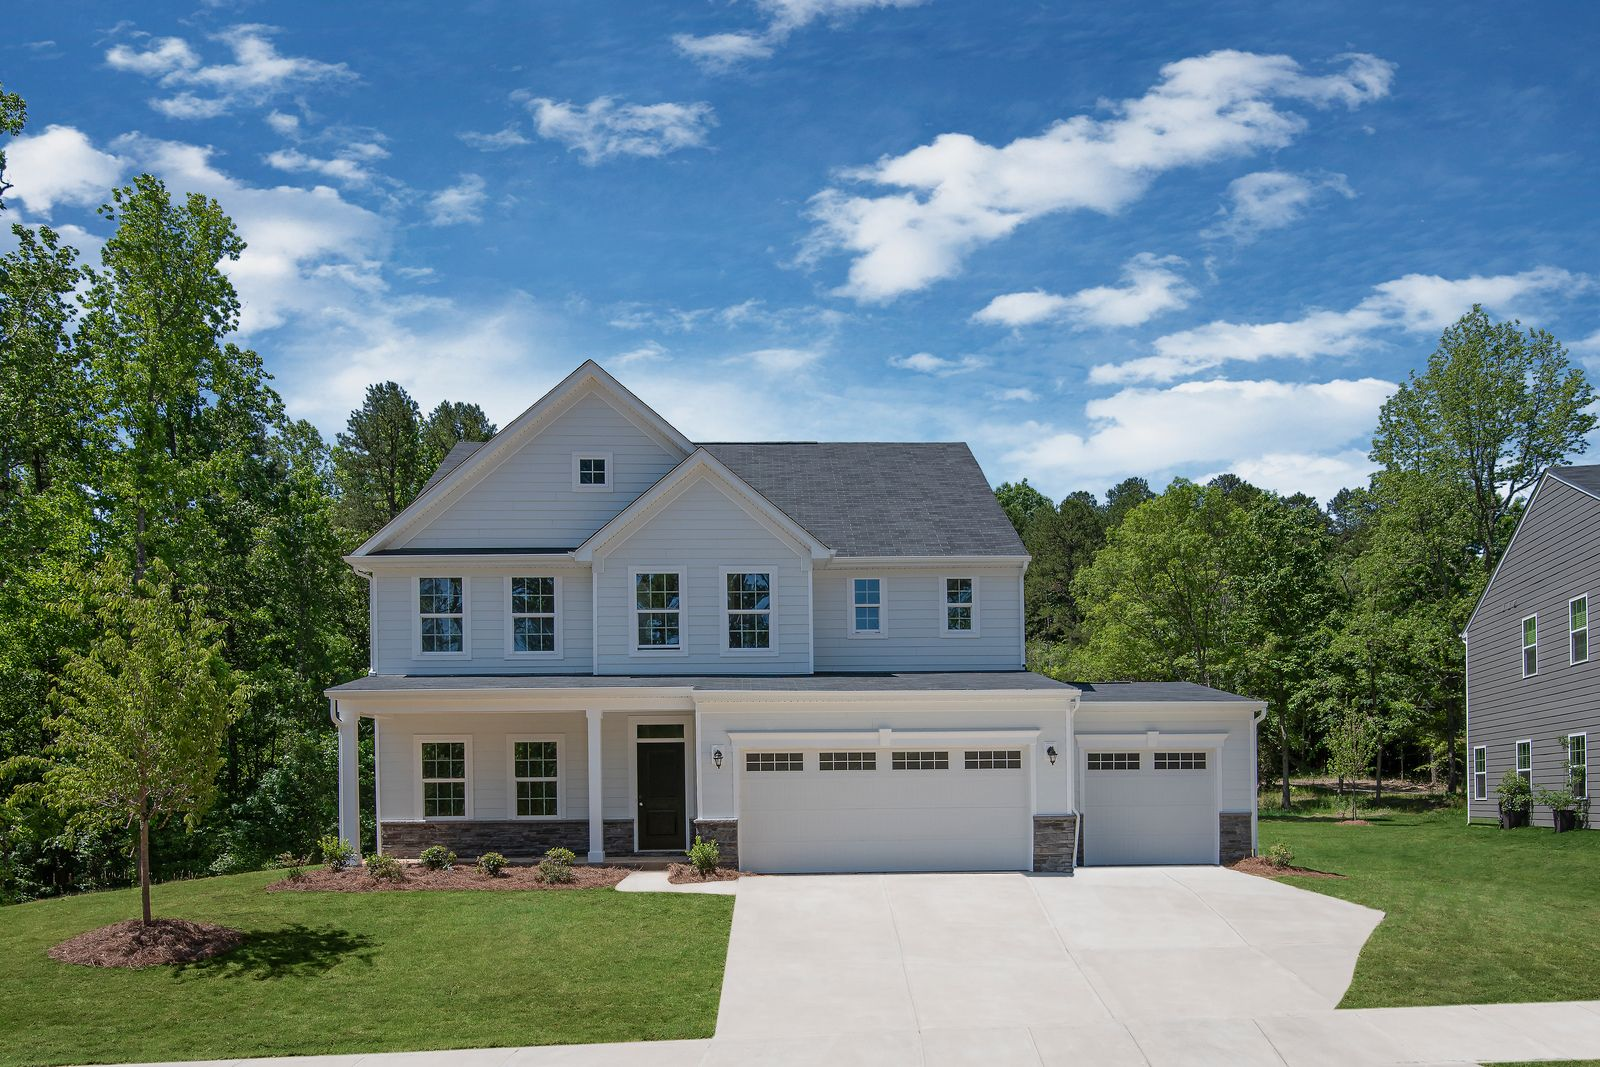 HUNTERSVILLE COMMUNITY WITH SPACIOUS, WOODED HOMESITES:You can have it all at Chapel Grove... space between neighbors, a home that backs to trees, walking trails, and a convenient location.Schedule a visitto learn more!